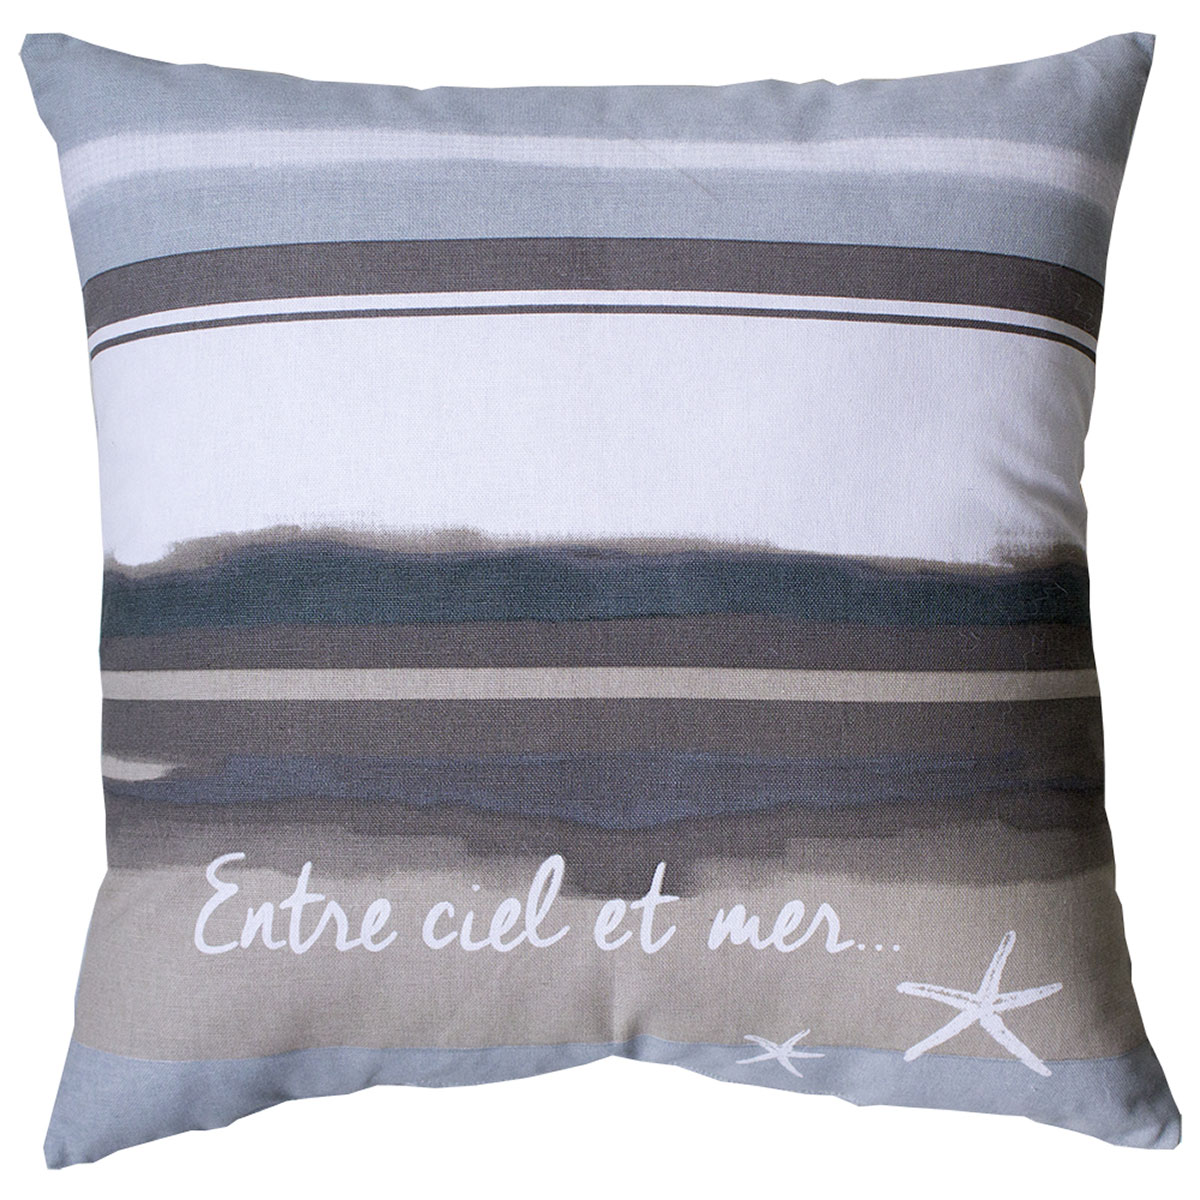 coussin non d houssable bord de mer gris homemaison vente en ligne coussins standards. Black Bedroom Furniture Sets. Home Design Ideas